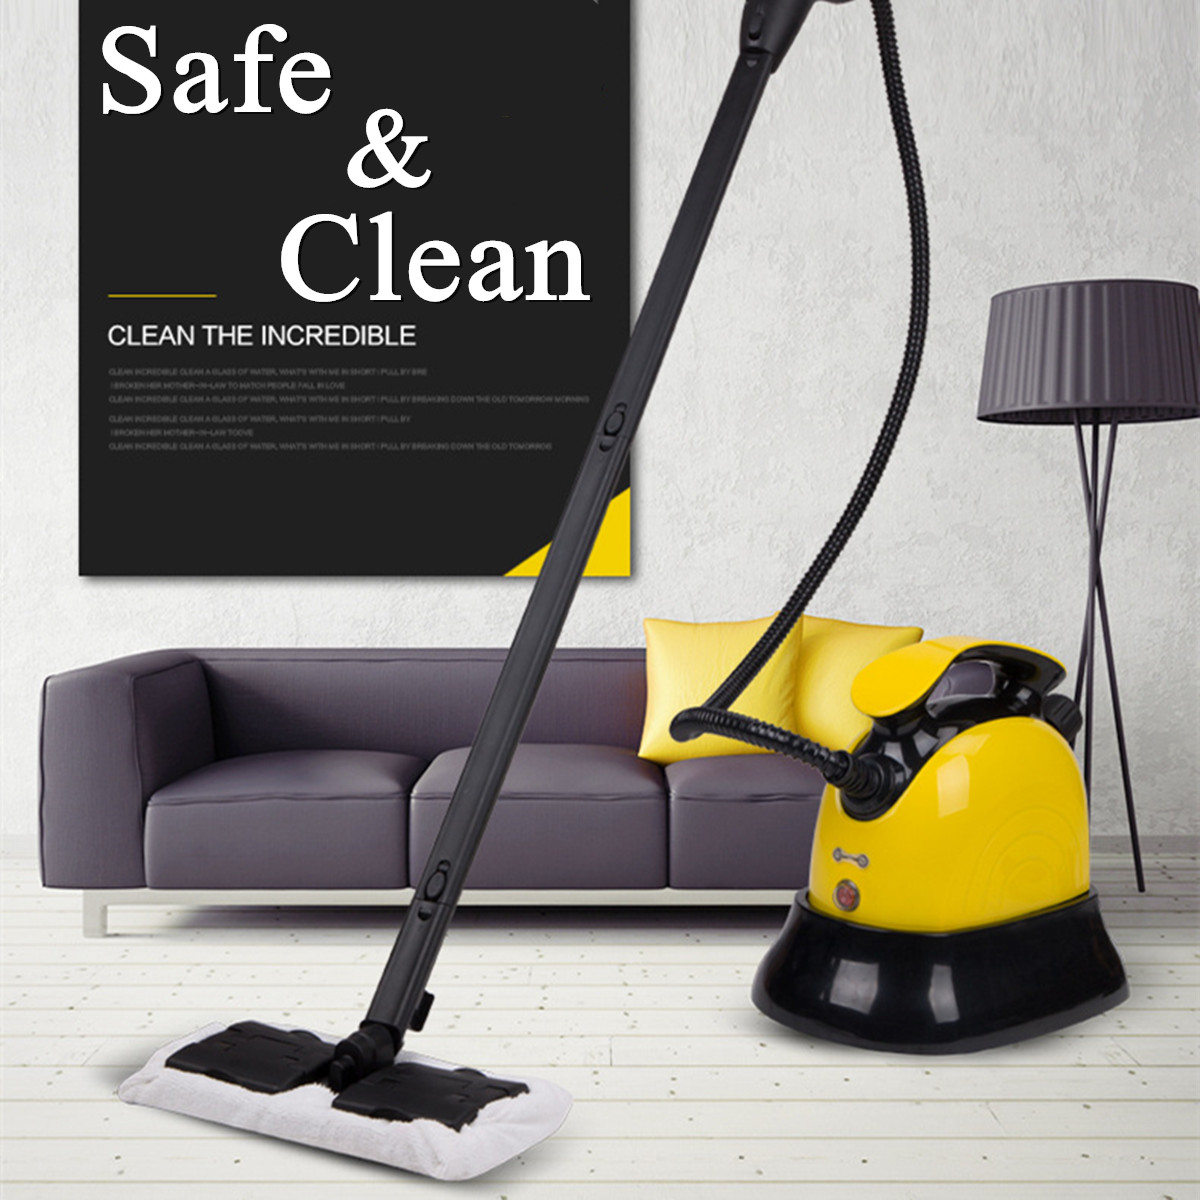 Warmtoo Household Electric Steam Cleaners Mop Handheld Floor Window Washers Mopping Broom Vacuum Cleaning Machine 220V EU